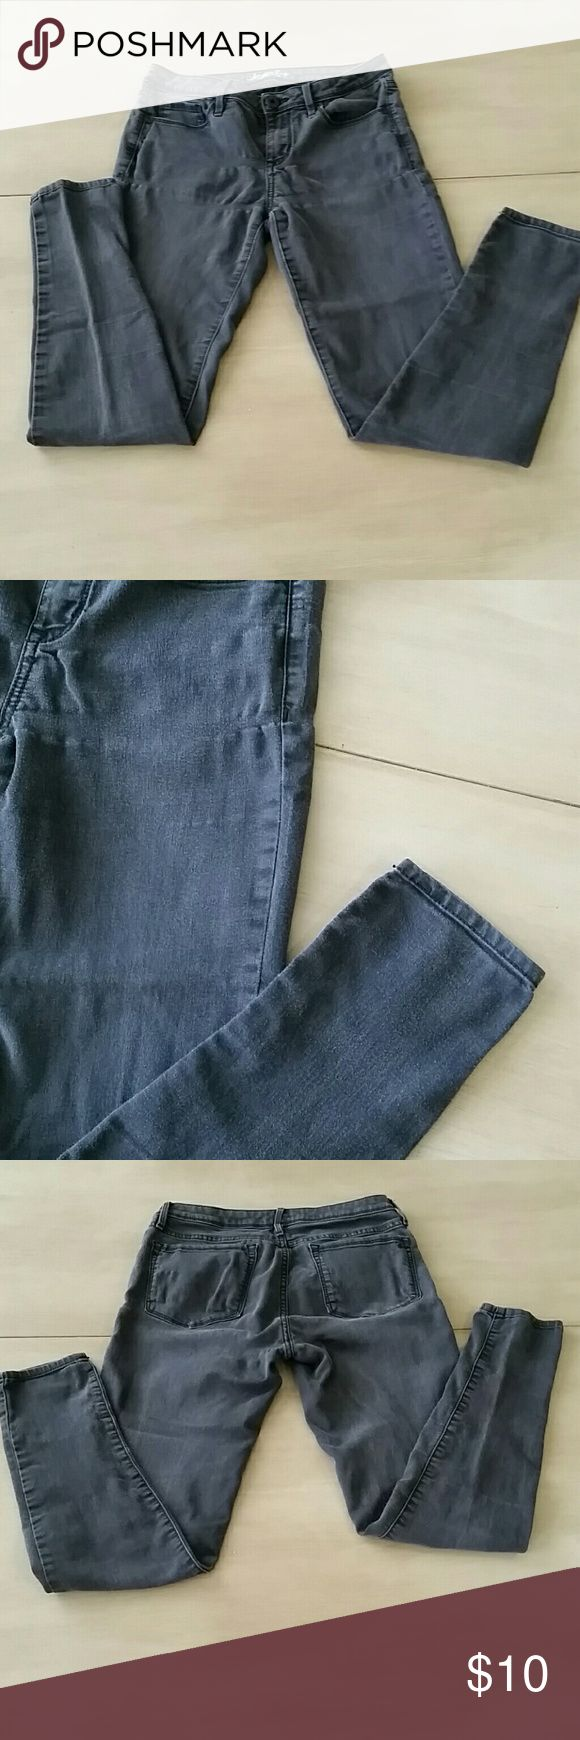 American Rag Black Skinny Jeans These are American Rag Black Skinny Jeans. They are faded, but for some reason I love a faded black skinny. Wear them straight or cuffed with a cute heel or bootie. They are a little high waisted. Size 5 in American Rag. American Rag  Jeans Skinny